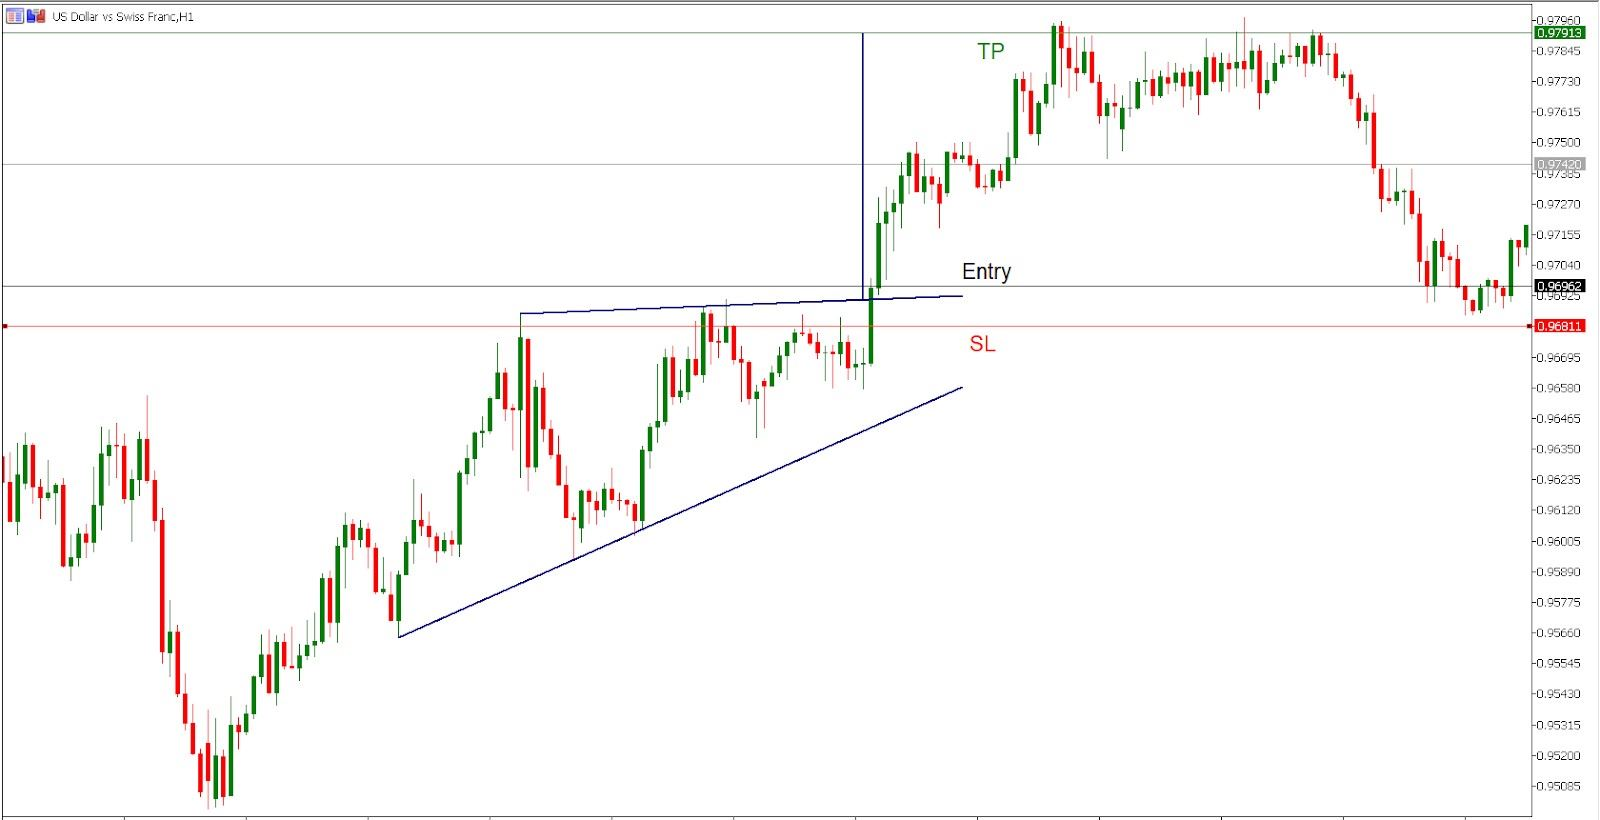 trading the ascending triangle on USD/CHF hourly chart